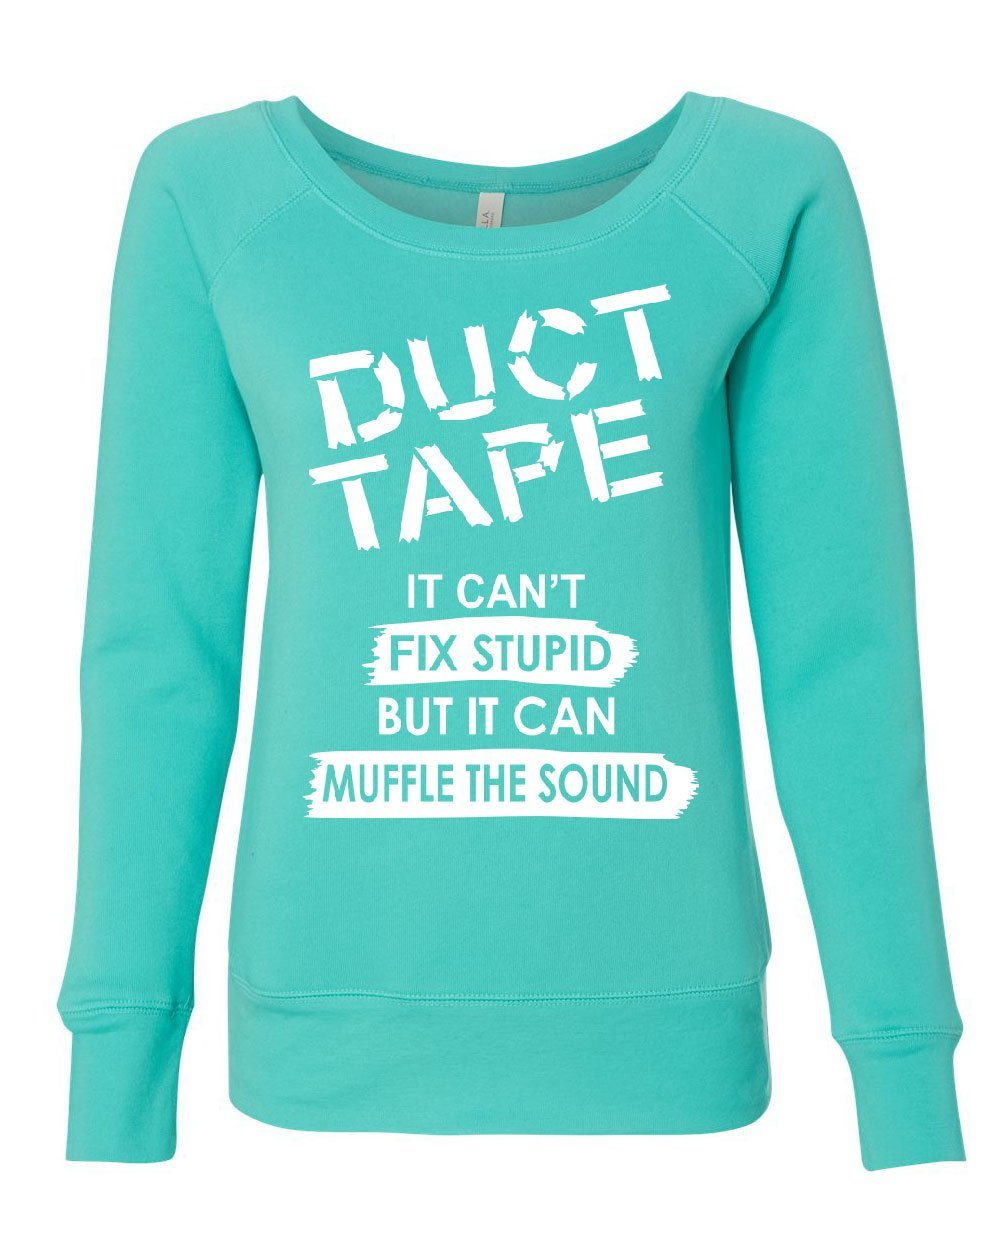 Tee Hunt Duct Tape It Can't Fix Stupid Women's Sweatshirt Offensive Humor Sarcastic Teal XL